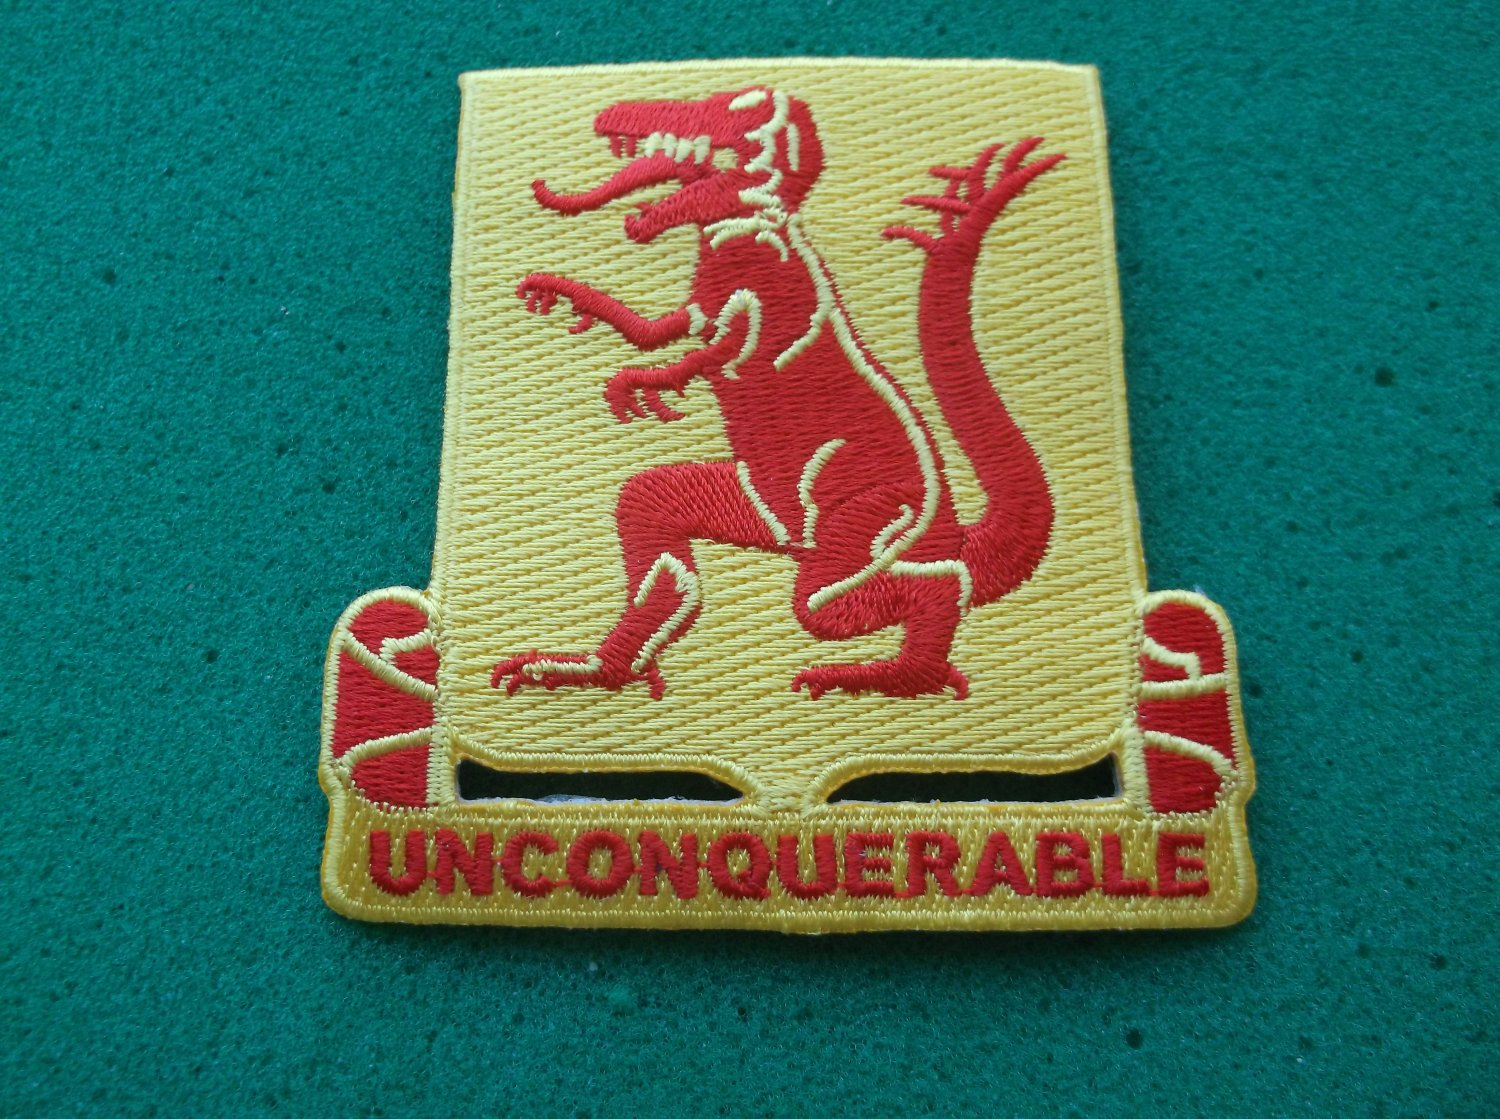 816TH TANK DESTROYER BATTALION PATCH